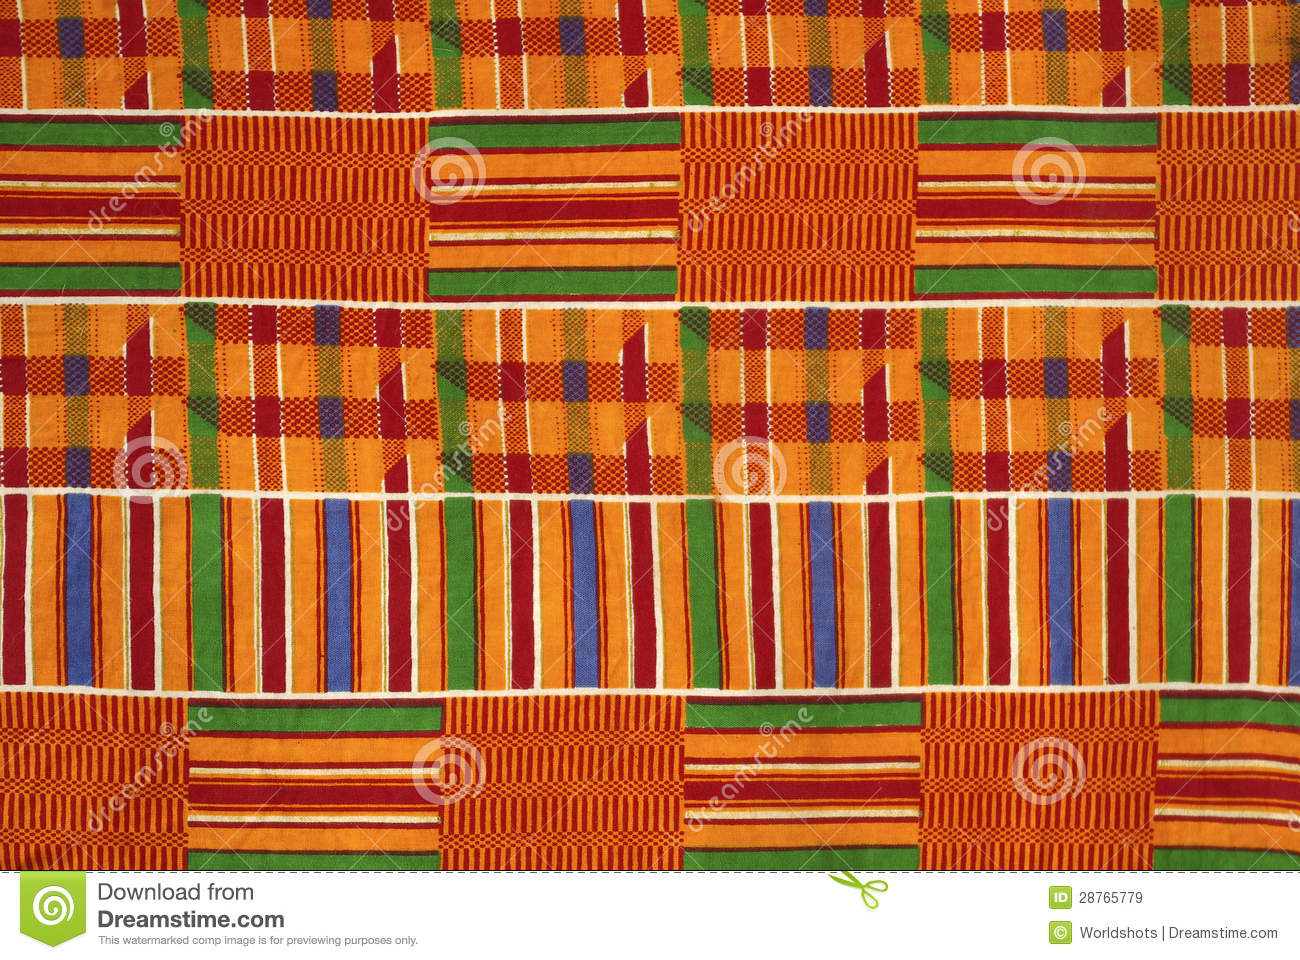 80 >> Kente cloth ghana stock image. Image of lifestyle, painted - 28765779